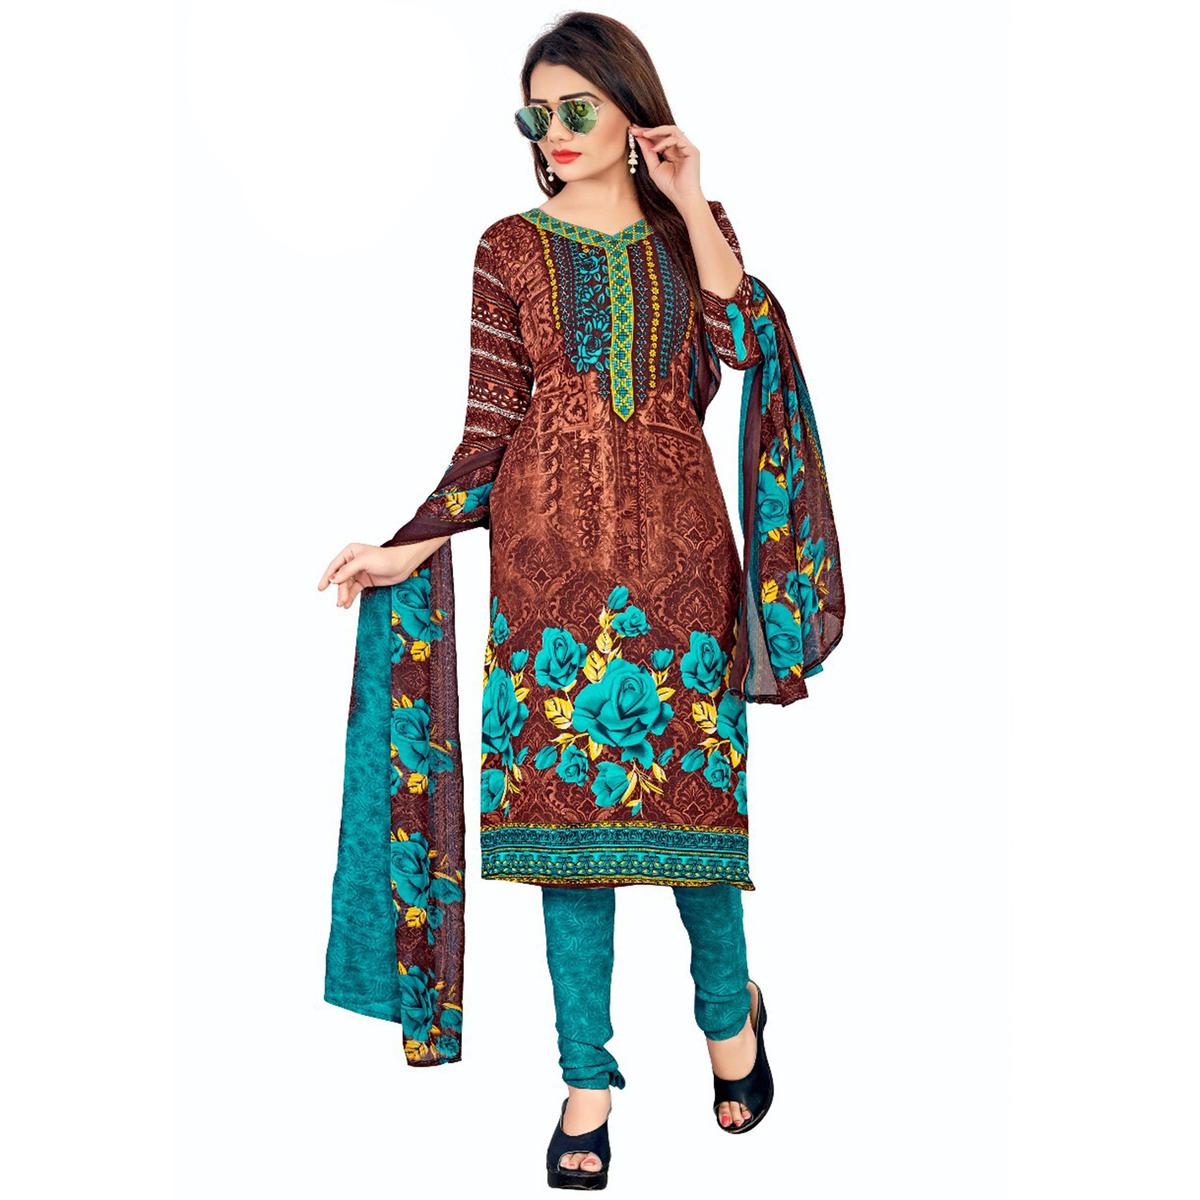 Captivating Brown Colored Casual Wear Printed Crepe Salwar Suit